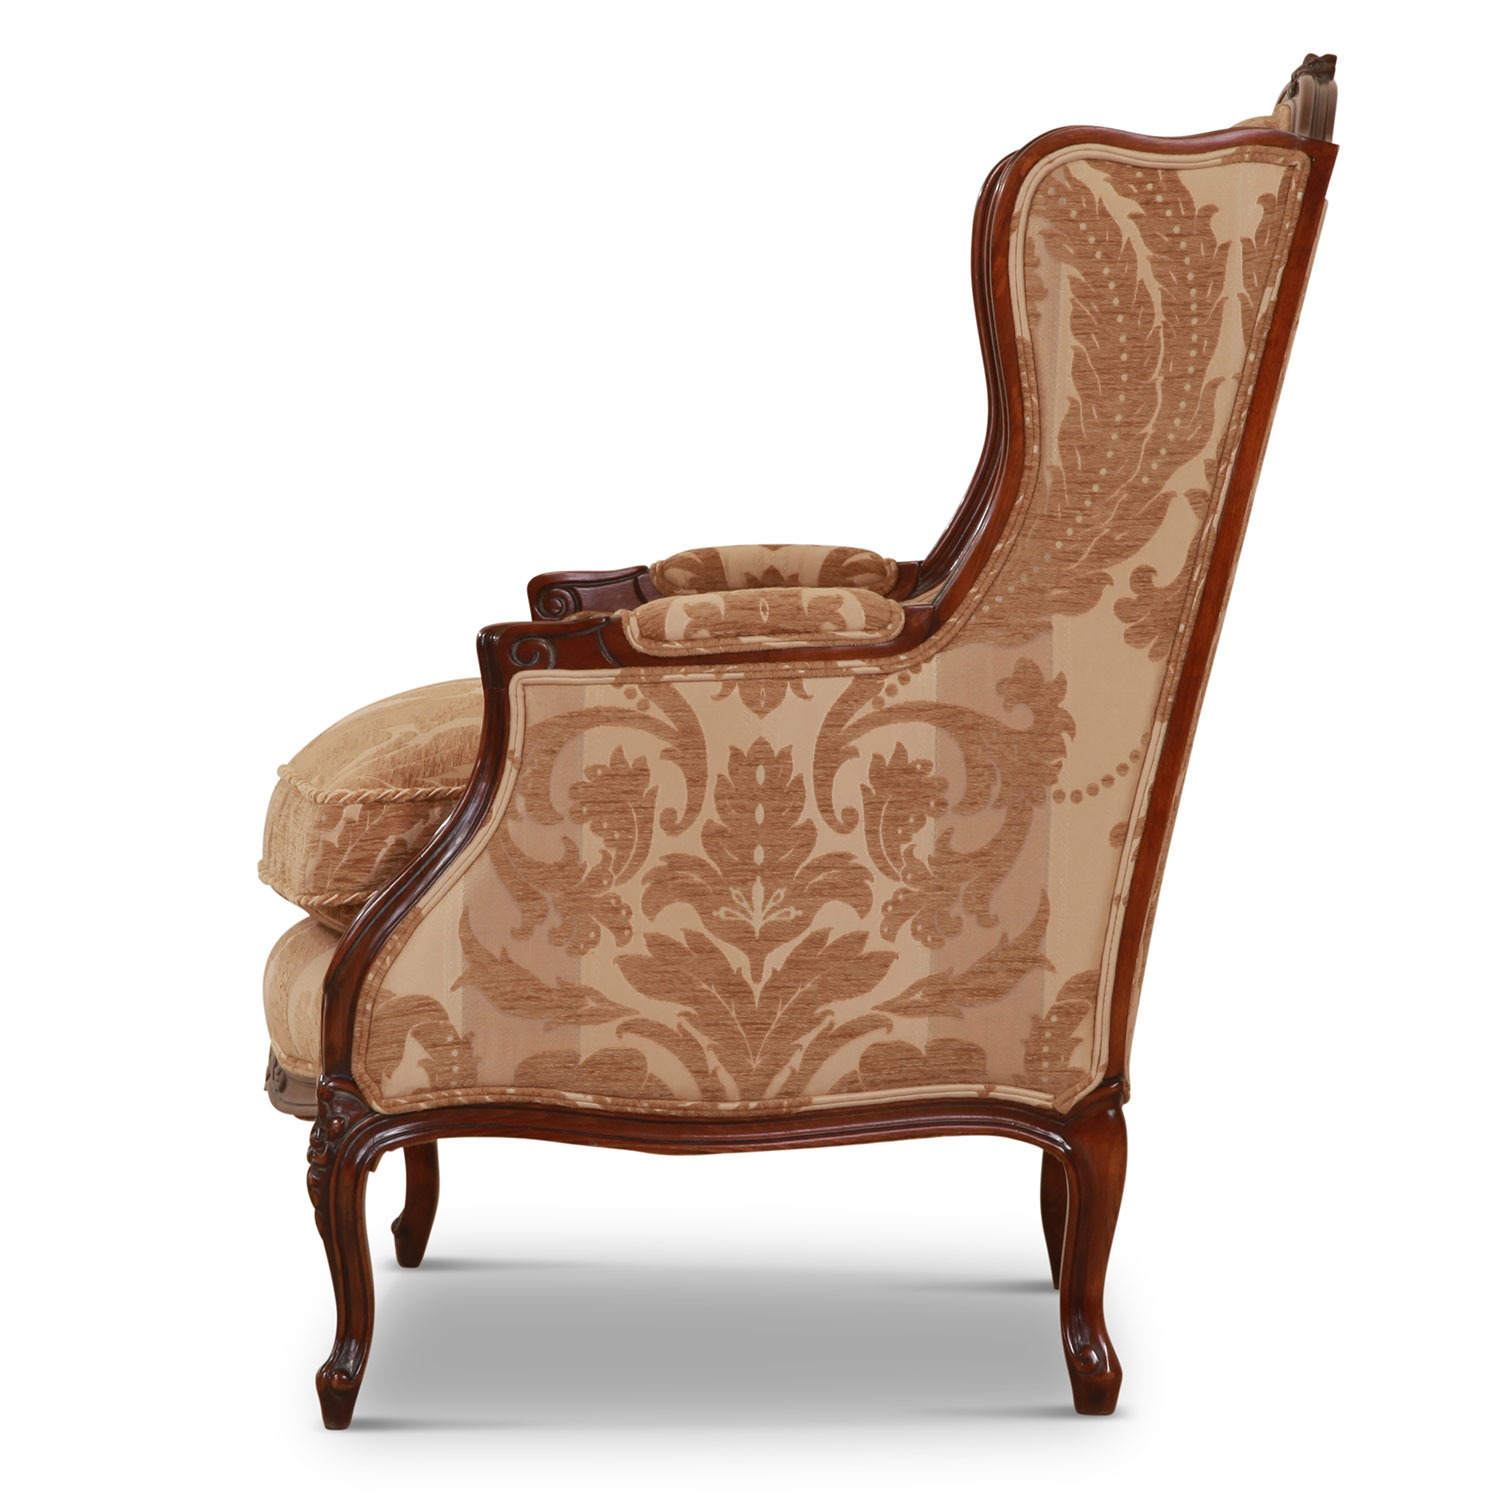 Naples wing chair